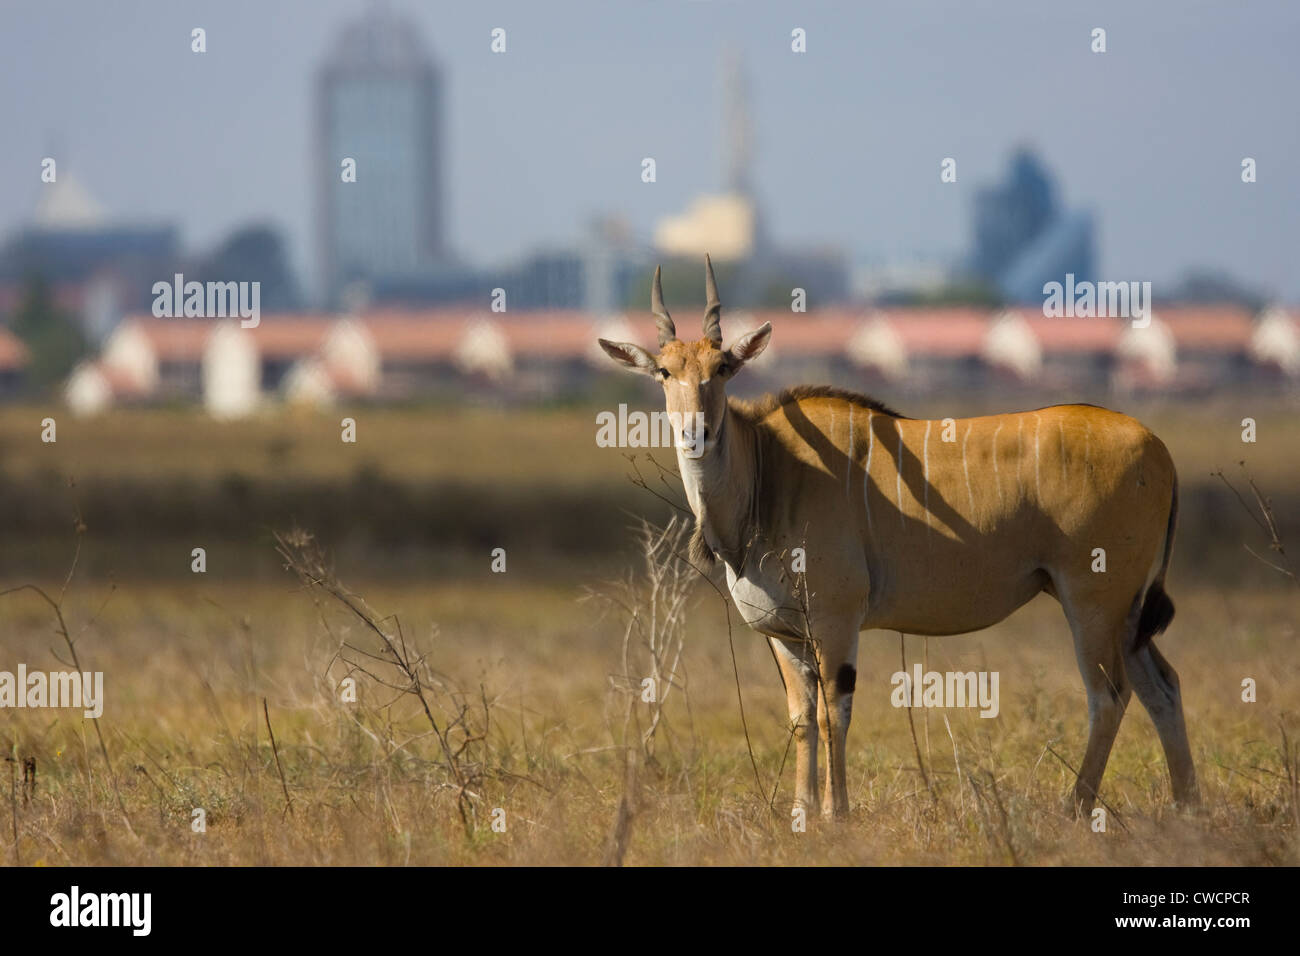 ELAND (Taurotragus oryx) with Nairobi city in background, Nairobi National Park, Kenya. - Stock Image